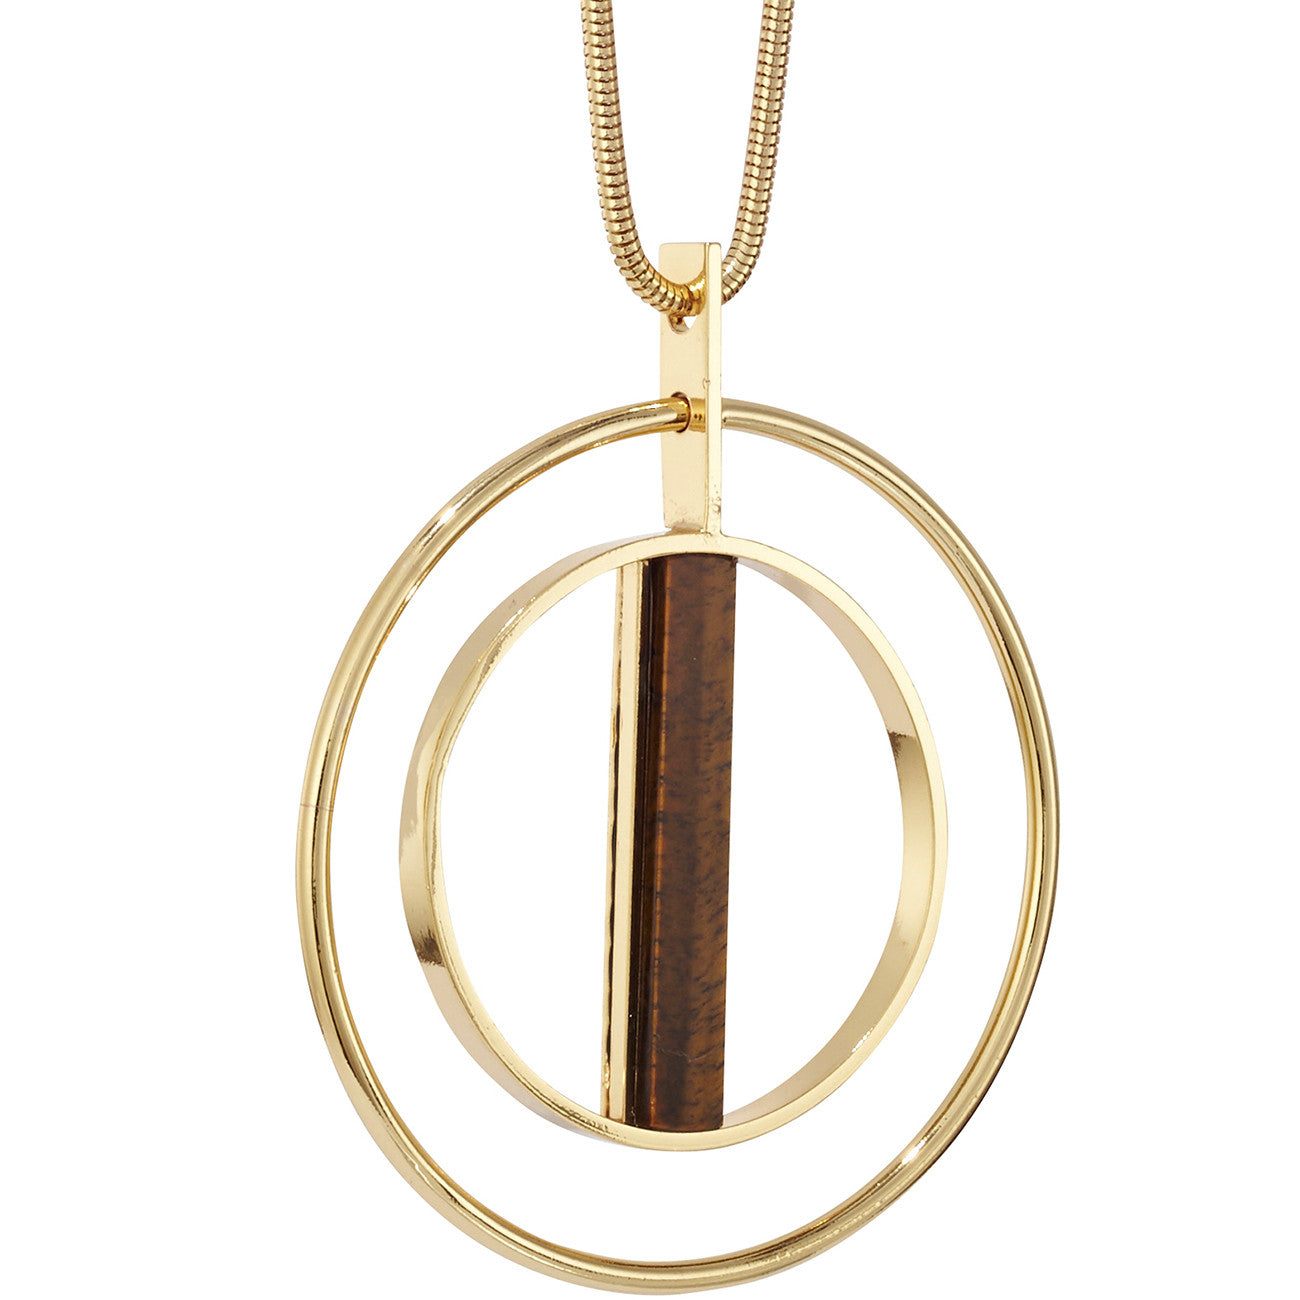 Lennox Pendant by Jenny Bird in Gold with Tiger's Eye Stone